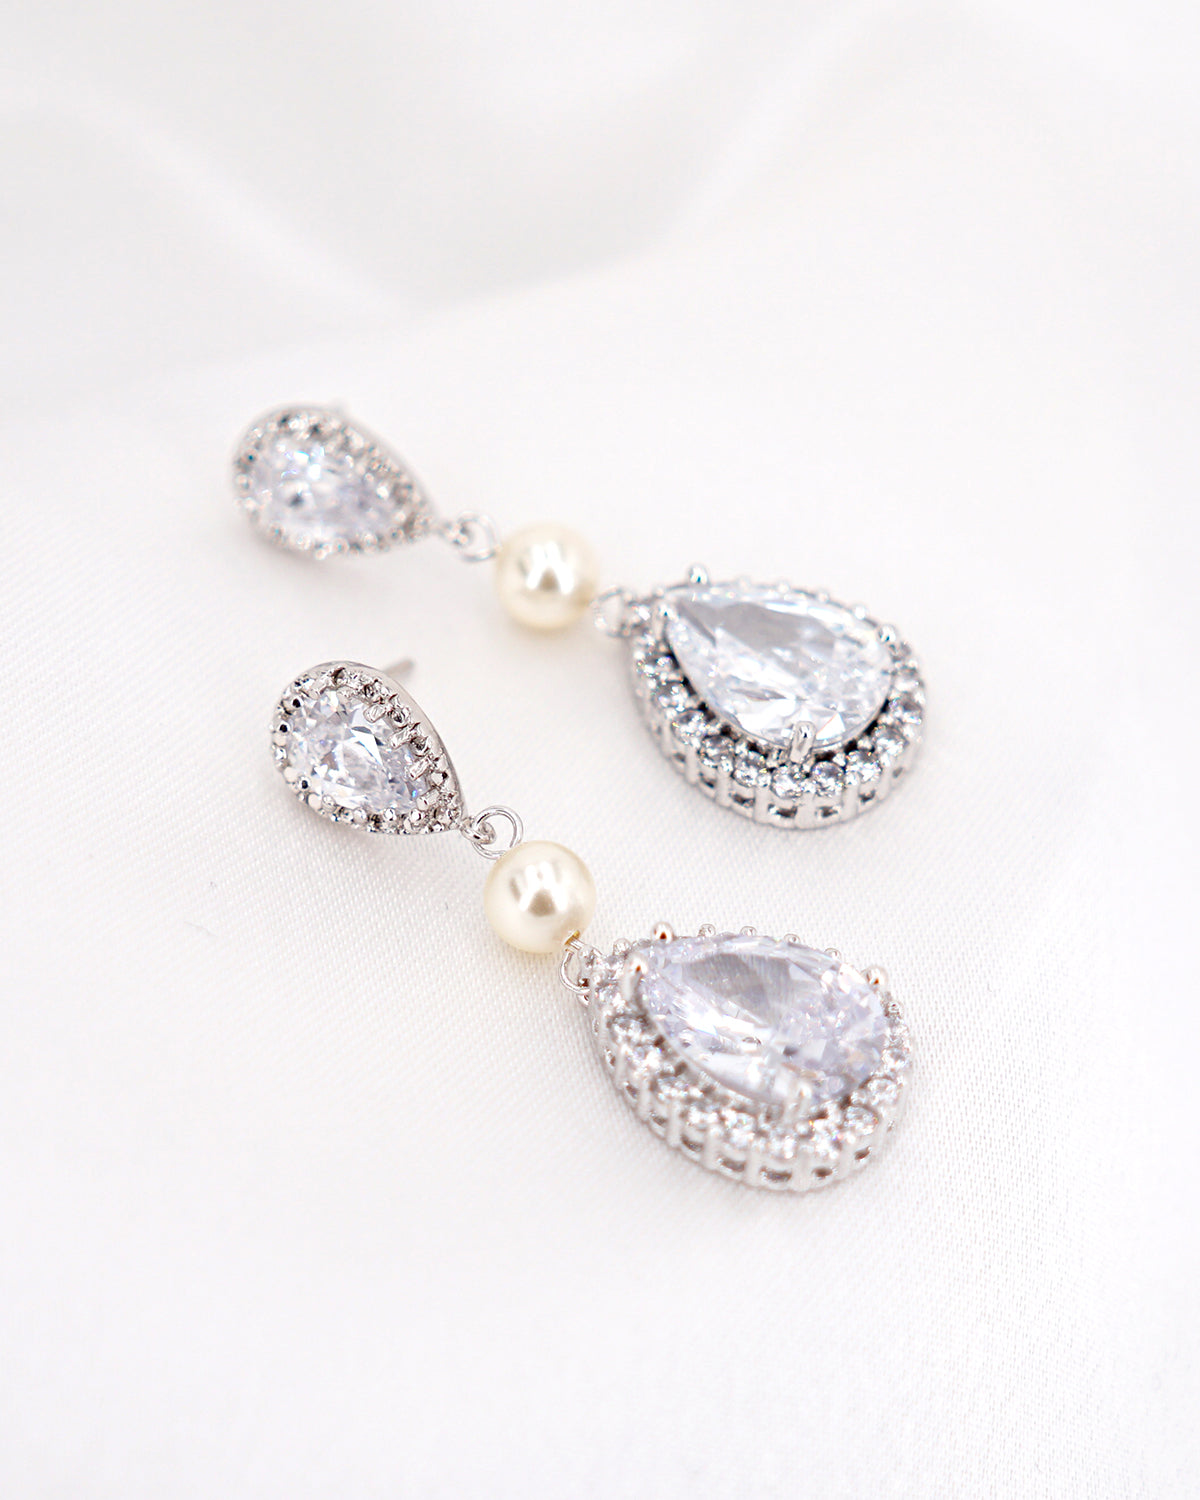 Silver Teardrop & Pearl Earrings | Bride Bridal Bridesmaids Jewelry